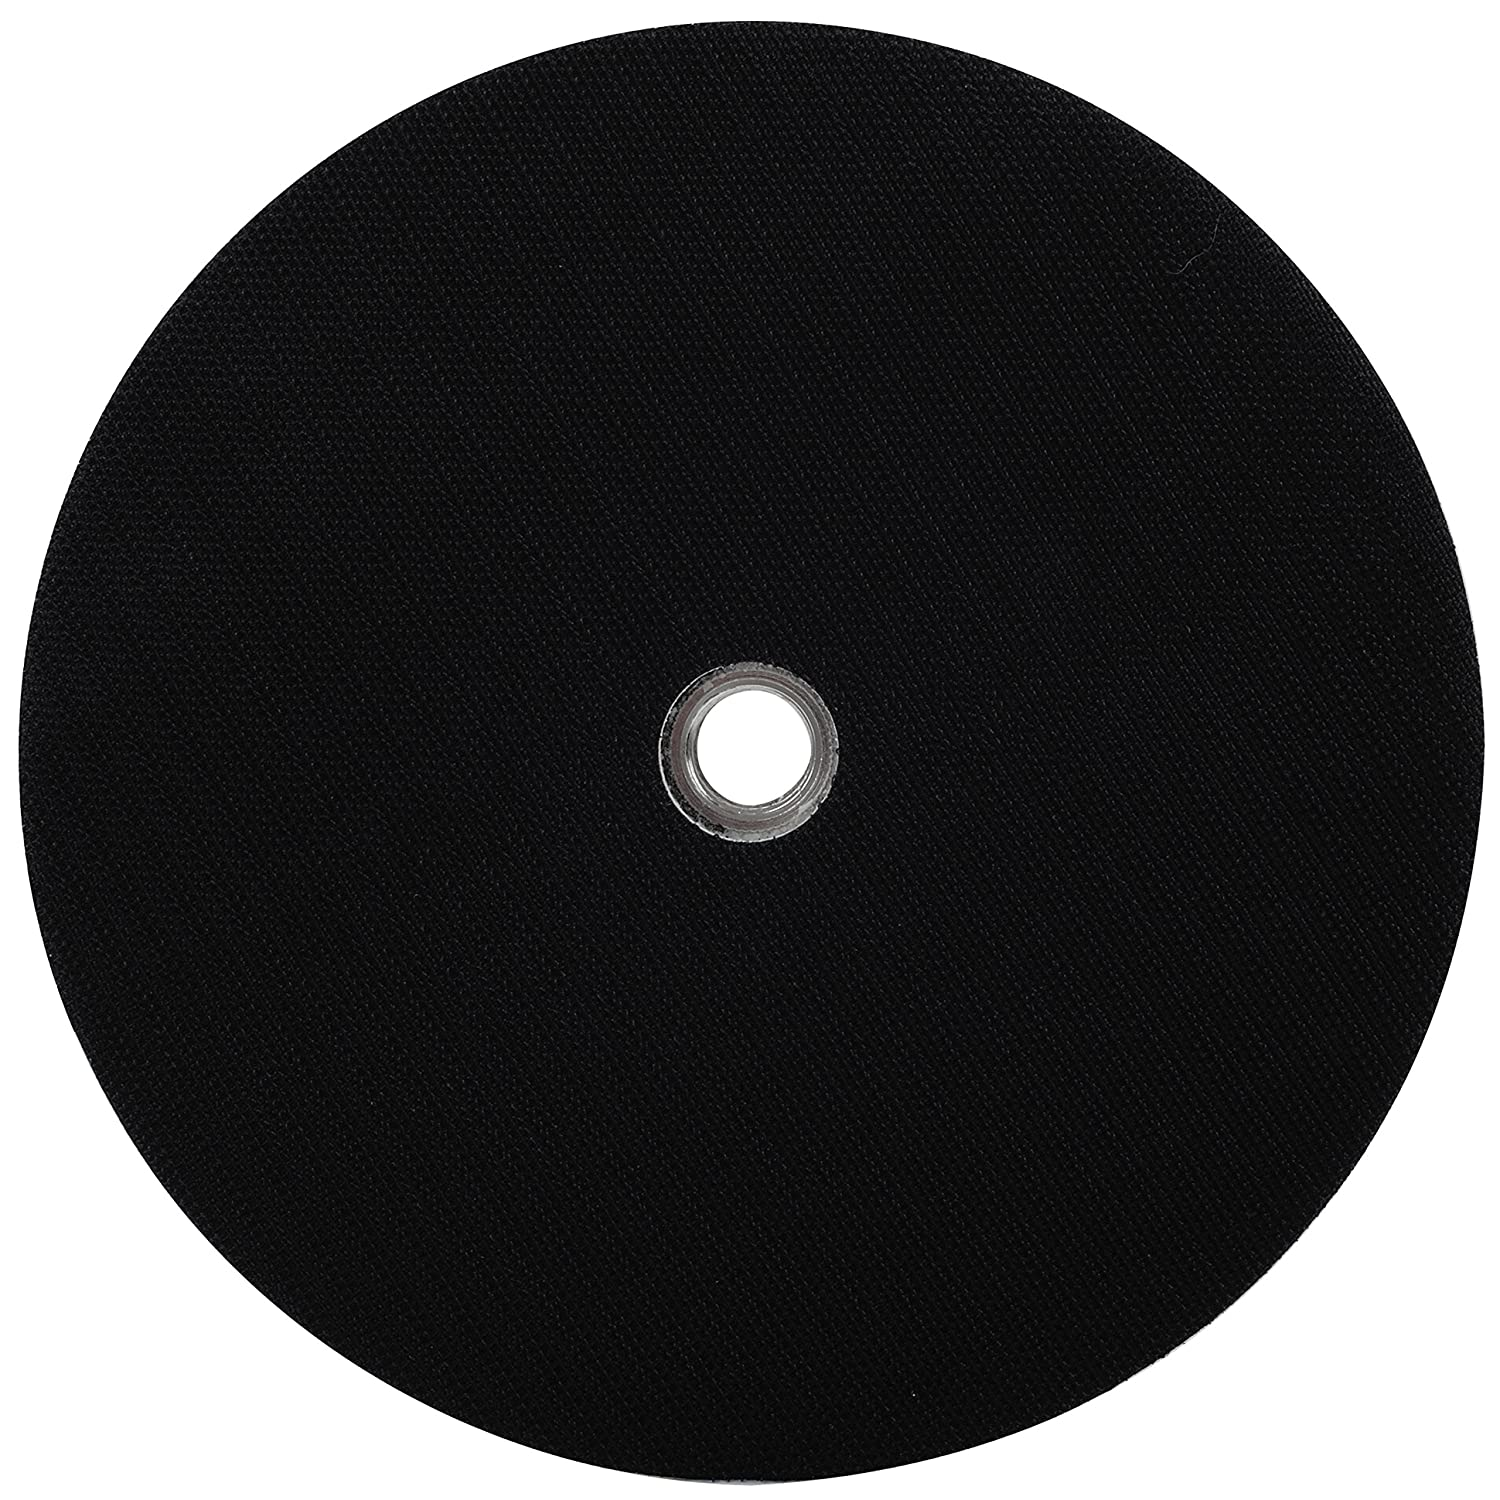 Wizards (11207) 7' Bendi-Backer Buffing Pad Backing Plate Wizards Products 3004.2967